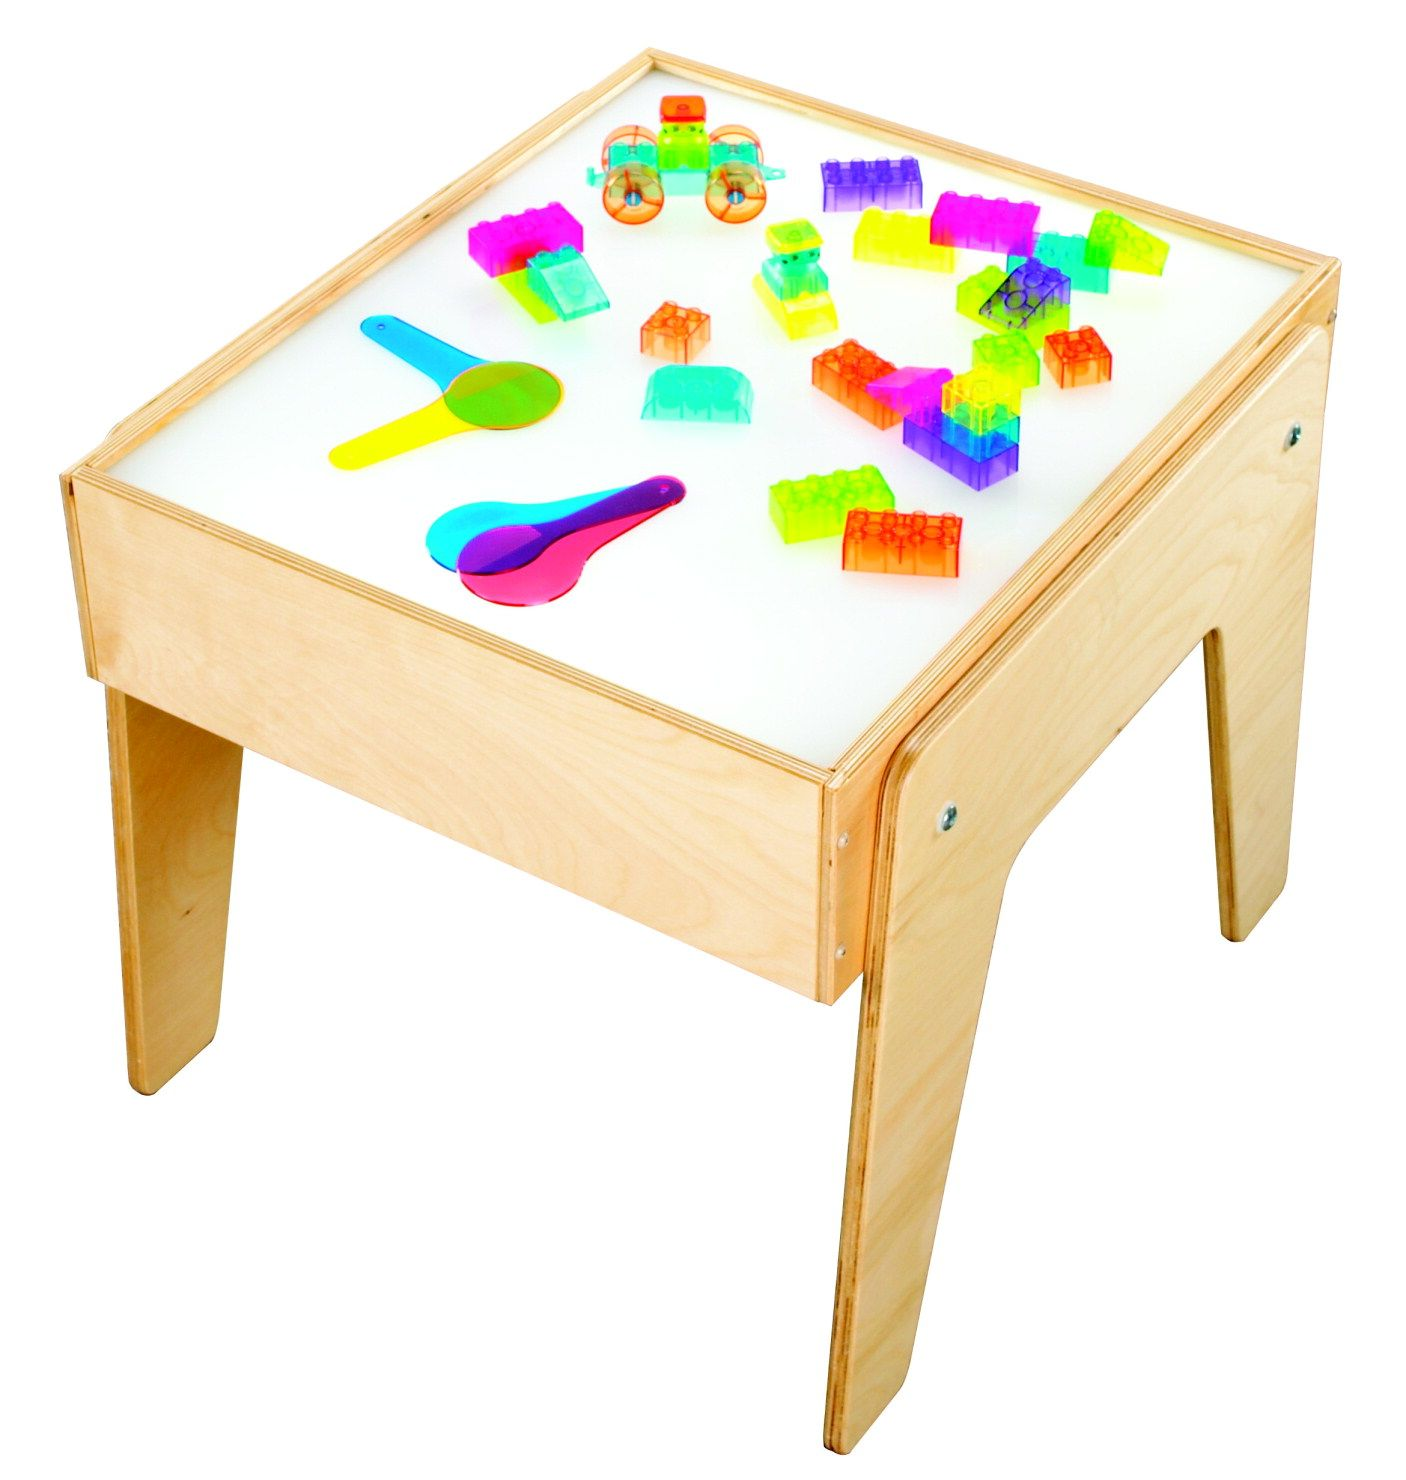 Childcraft mini light table freestanding table fits where space is limited table can be